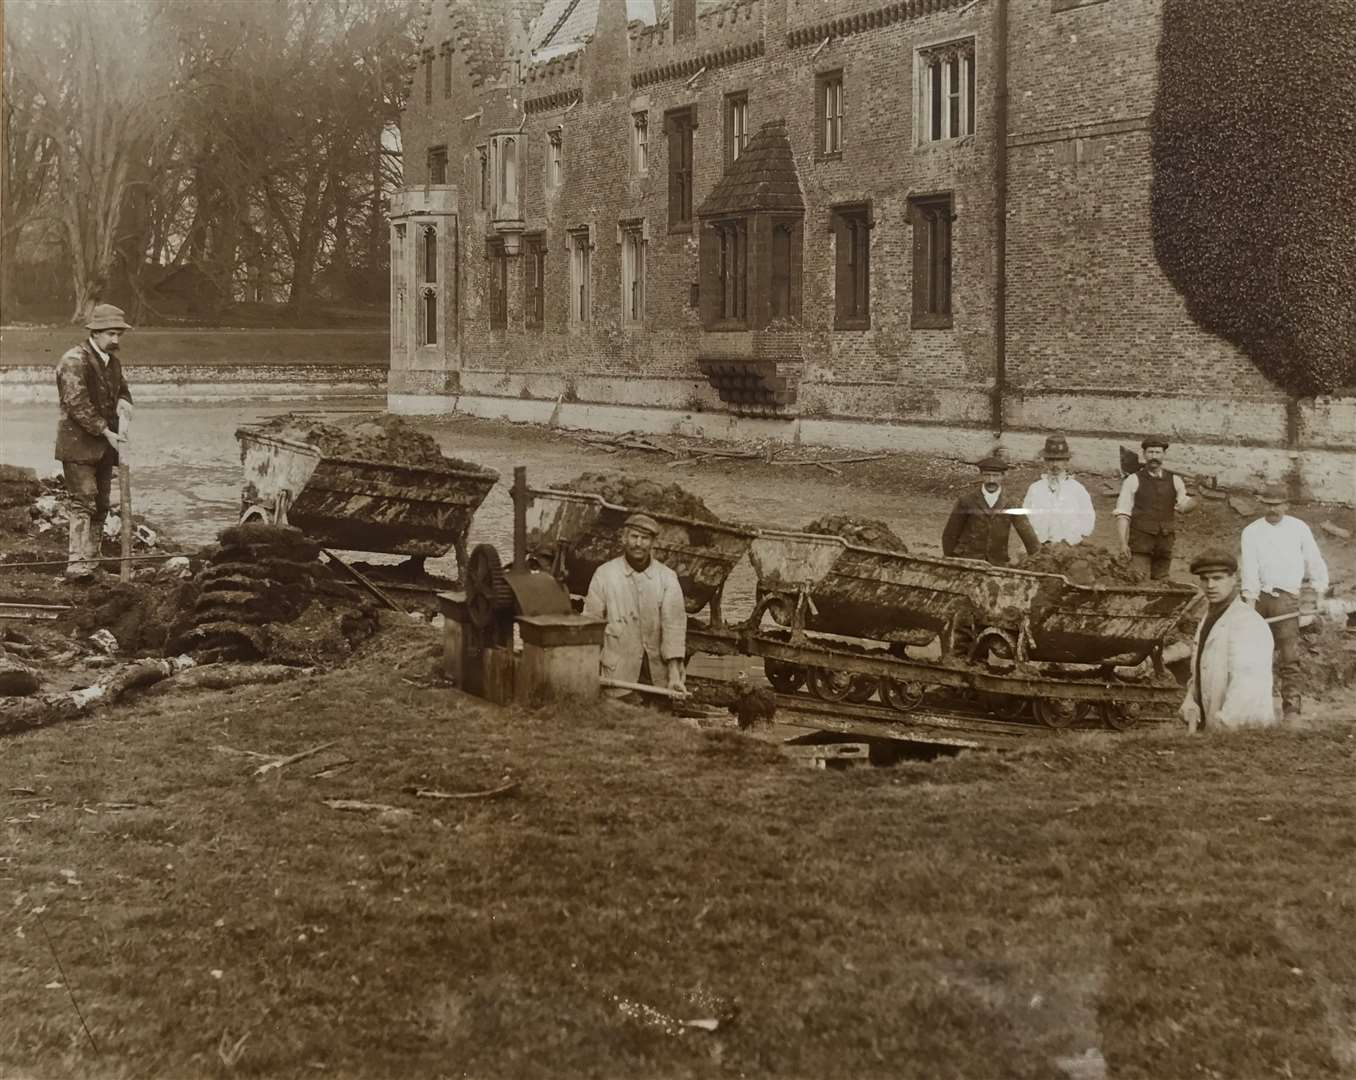 Moat work west between 1900 and 1910. (46914673)